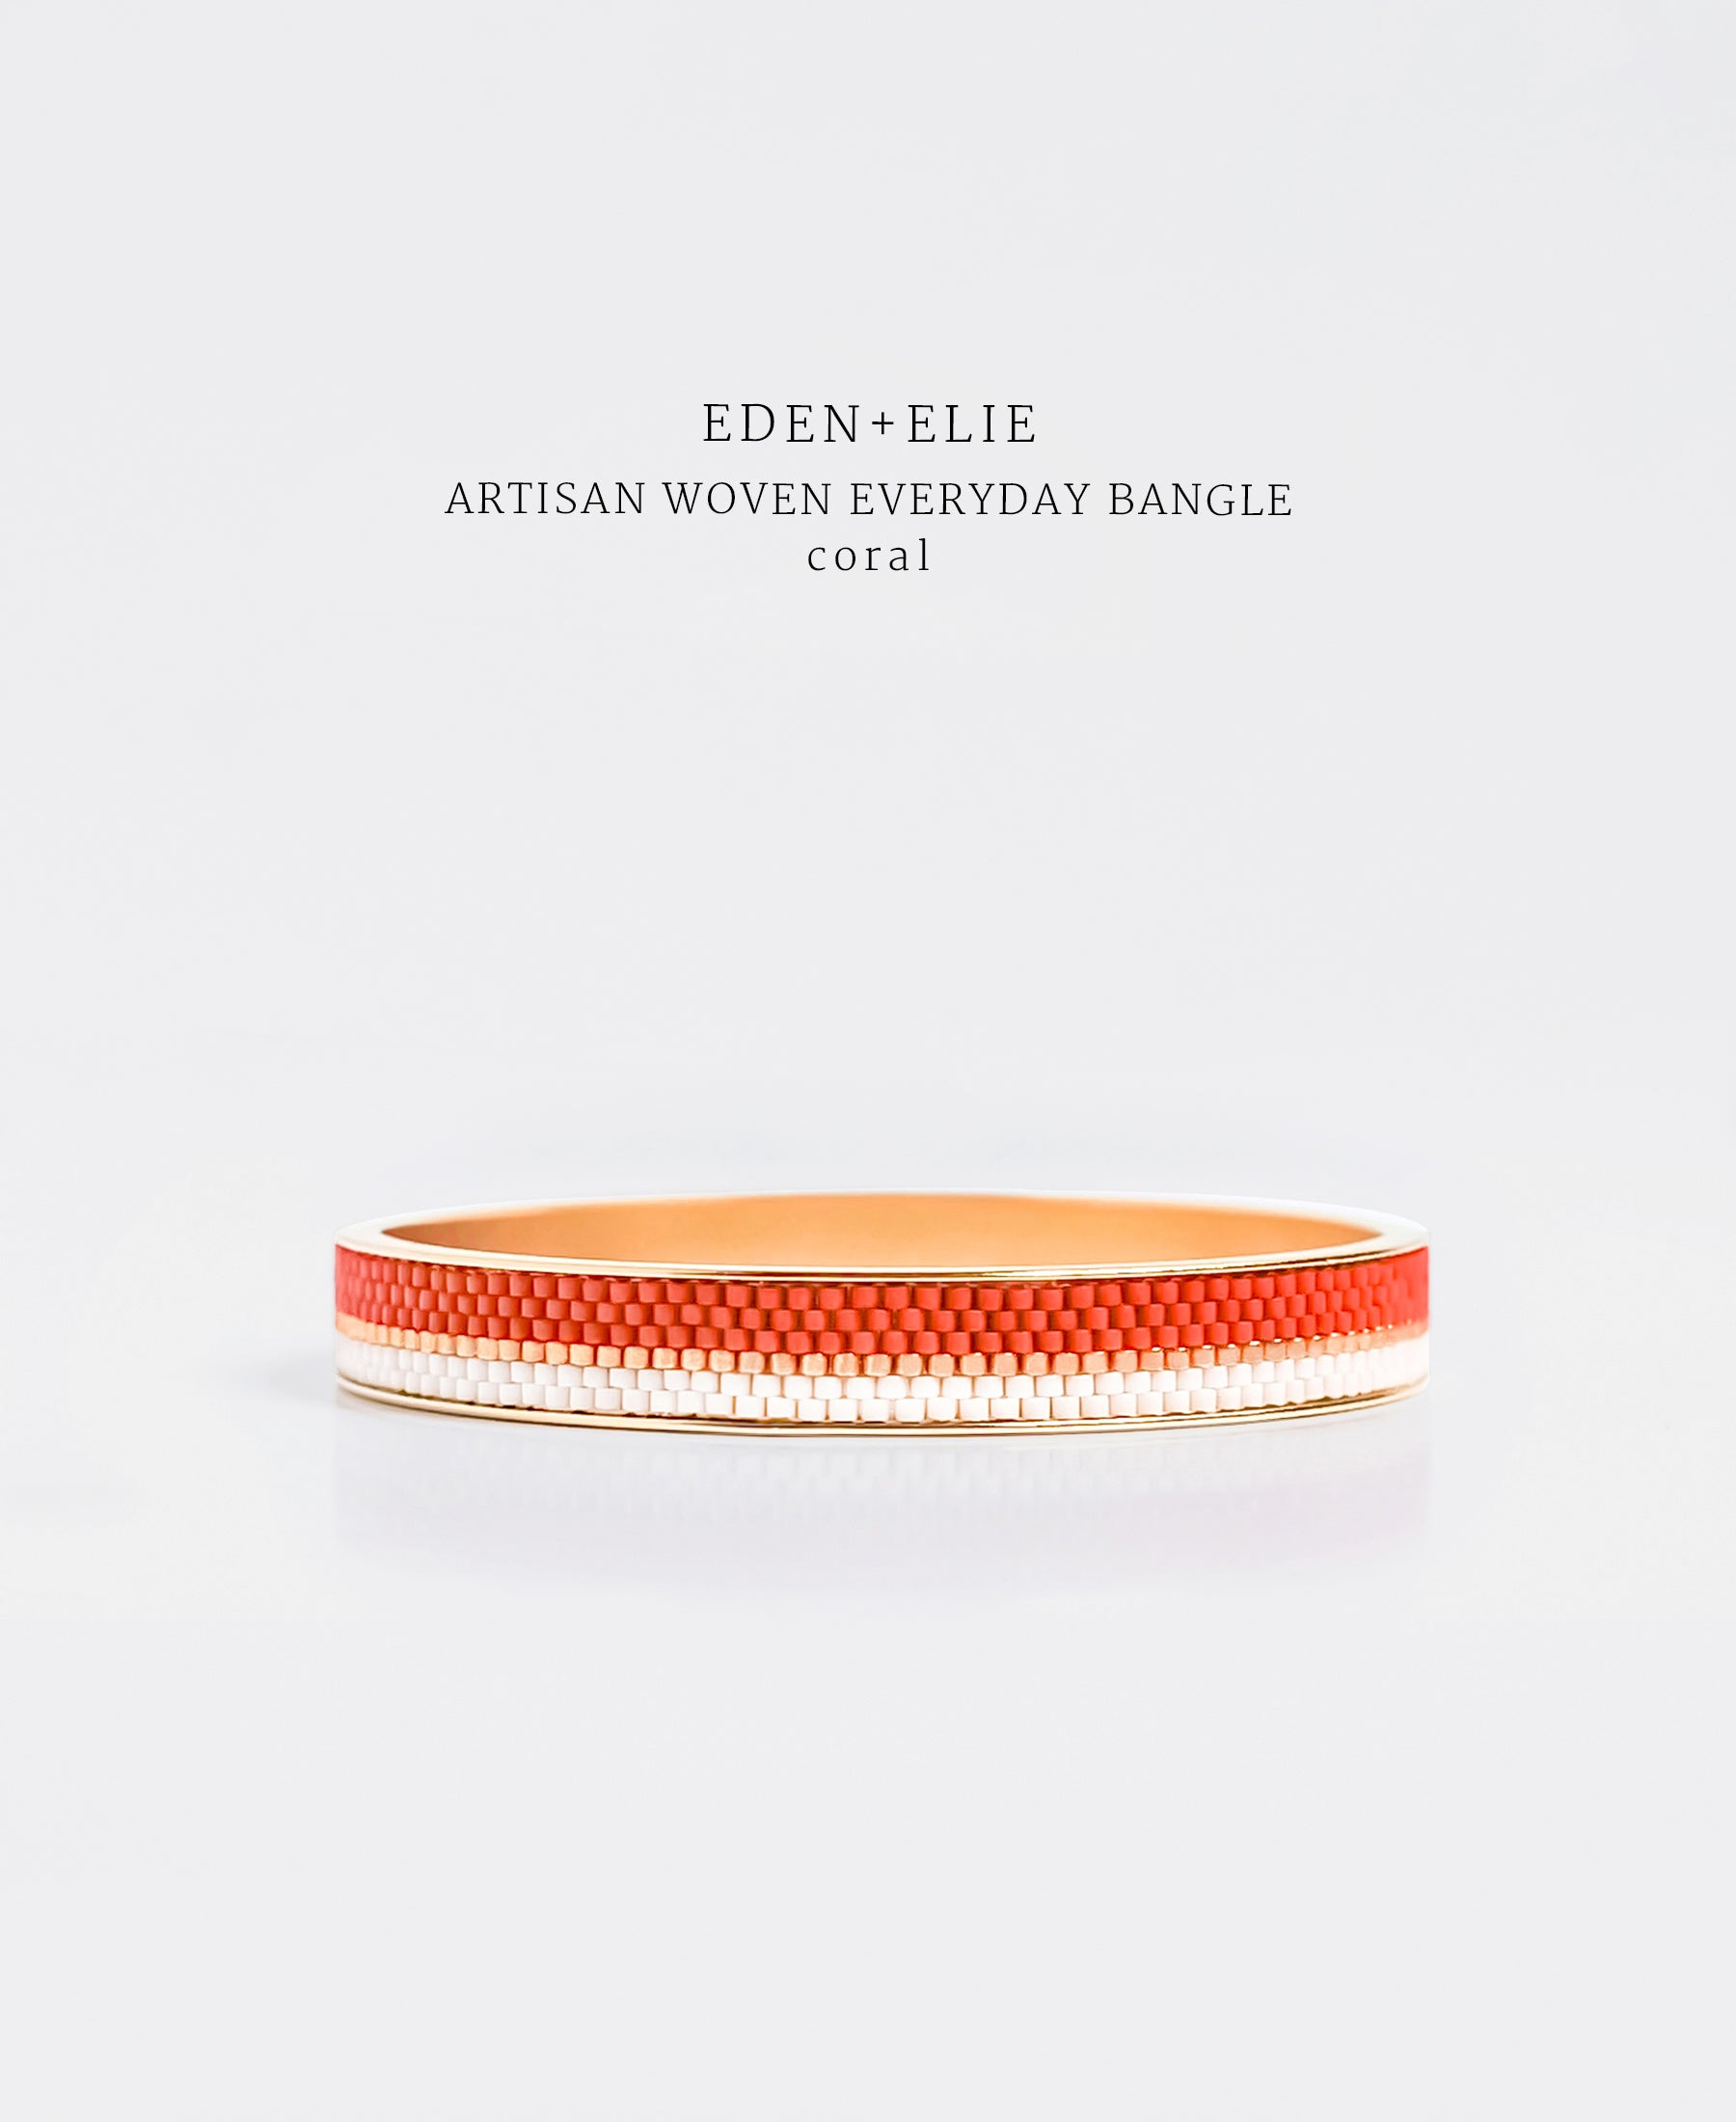 EDEN + ELIE Everyday gold narrow bangle - coral red